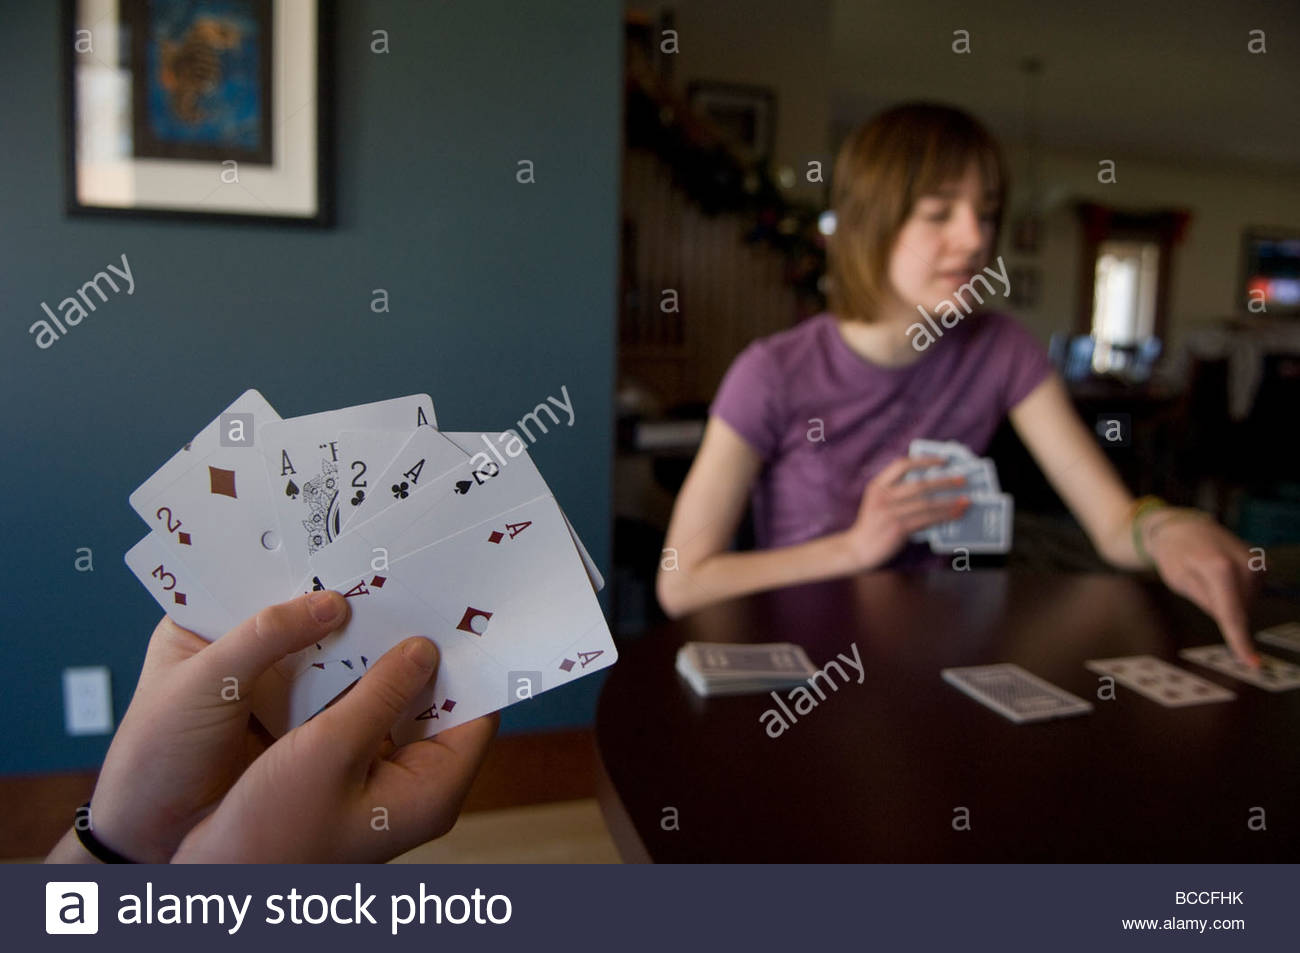 A 14-year-old girl plays Solitaire. - Stock Image